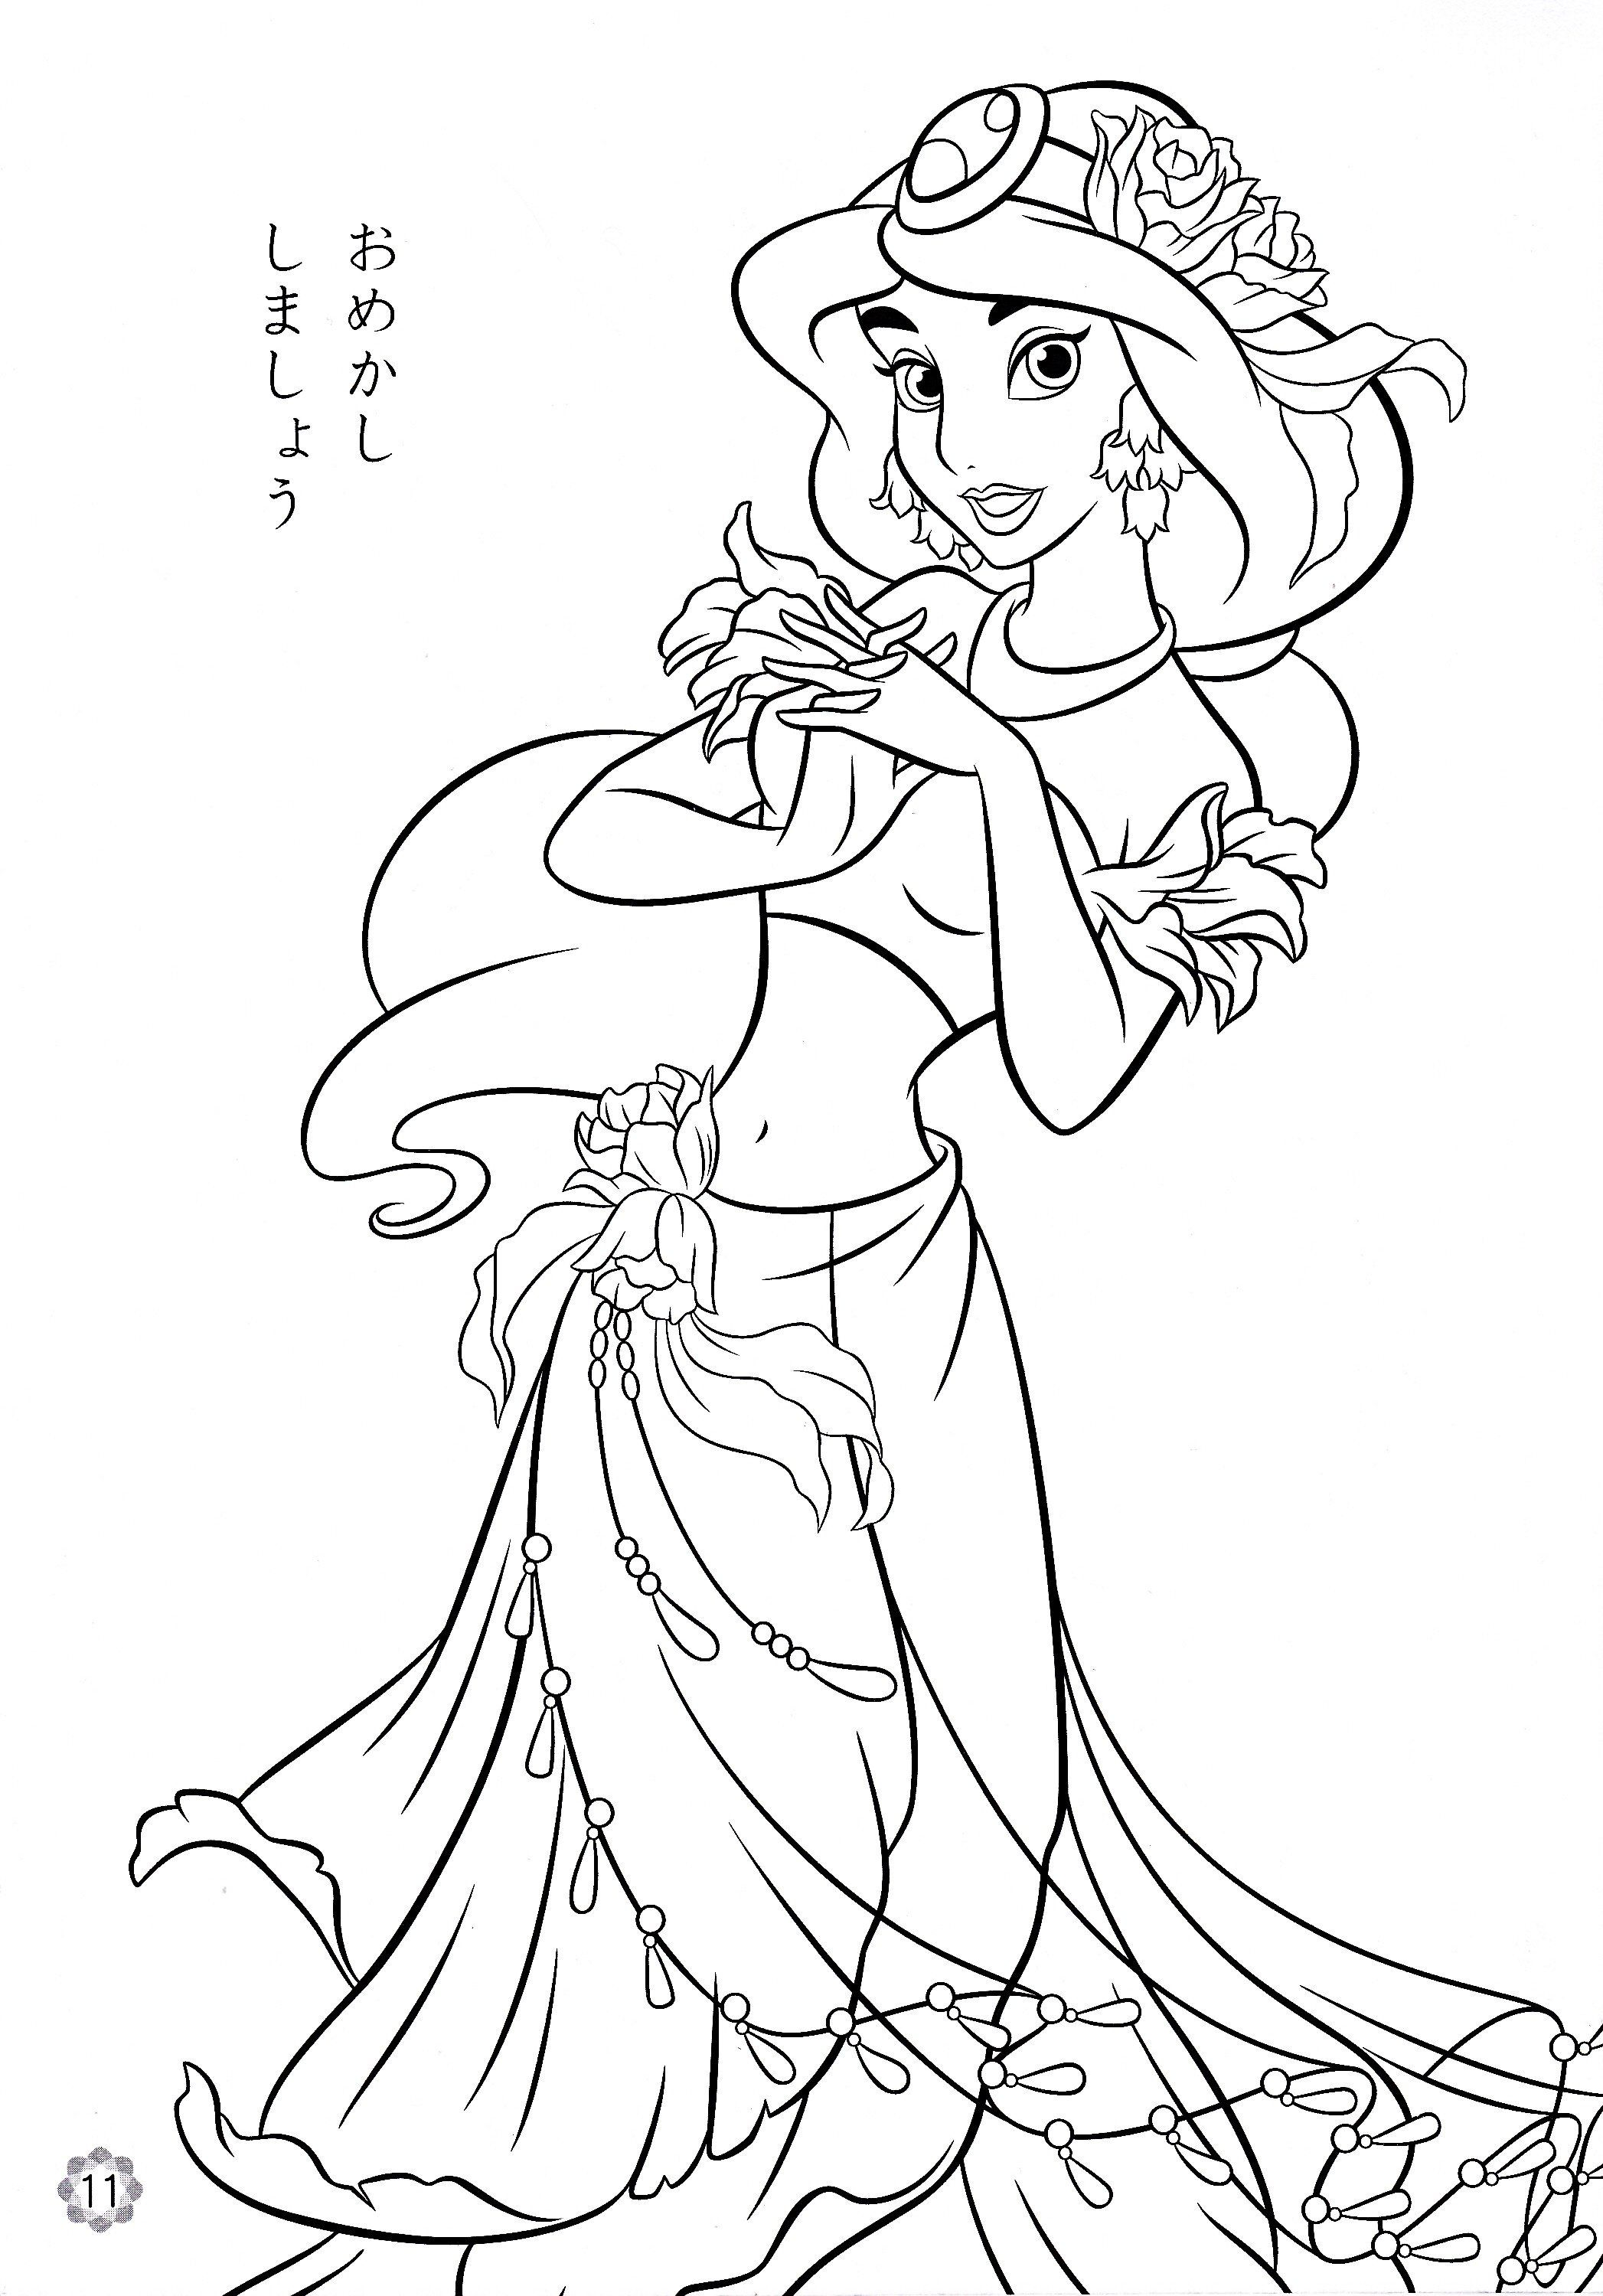 Princess Coloring Pages Online Inspirational Coloring Pages Pretty Princess Color Disney Princess Coloring Pages Mermaid Coloring Pages Rapunzel Coloring Pages